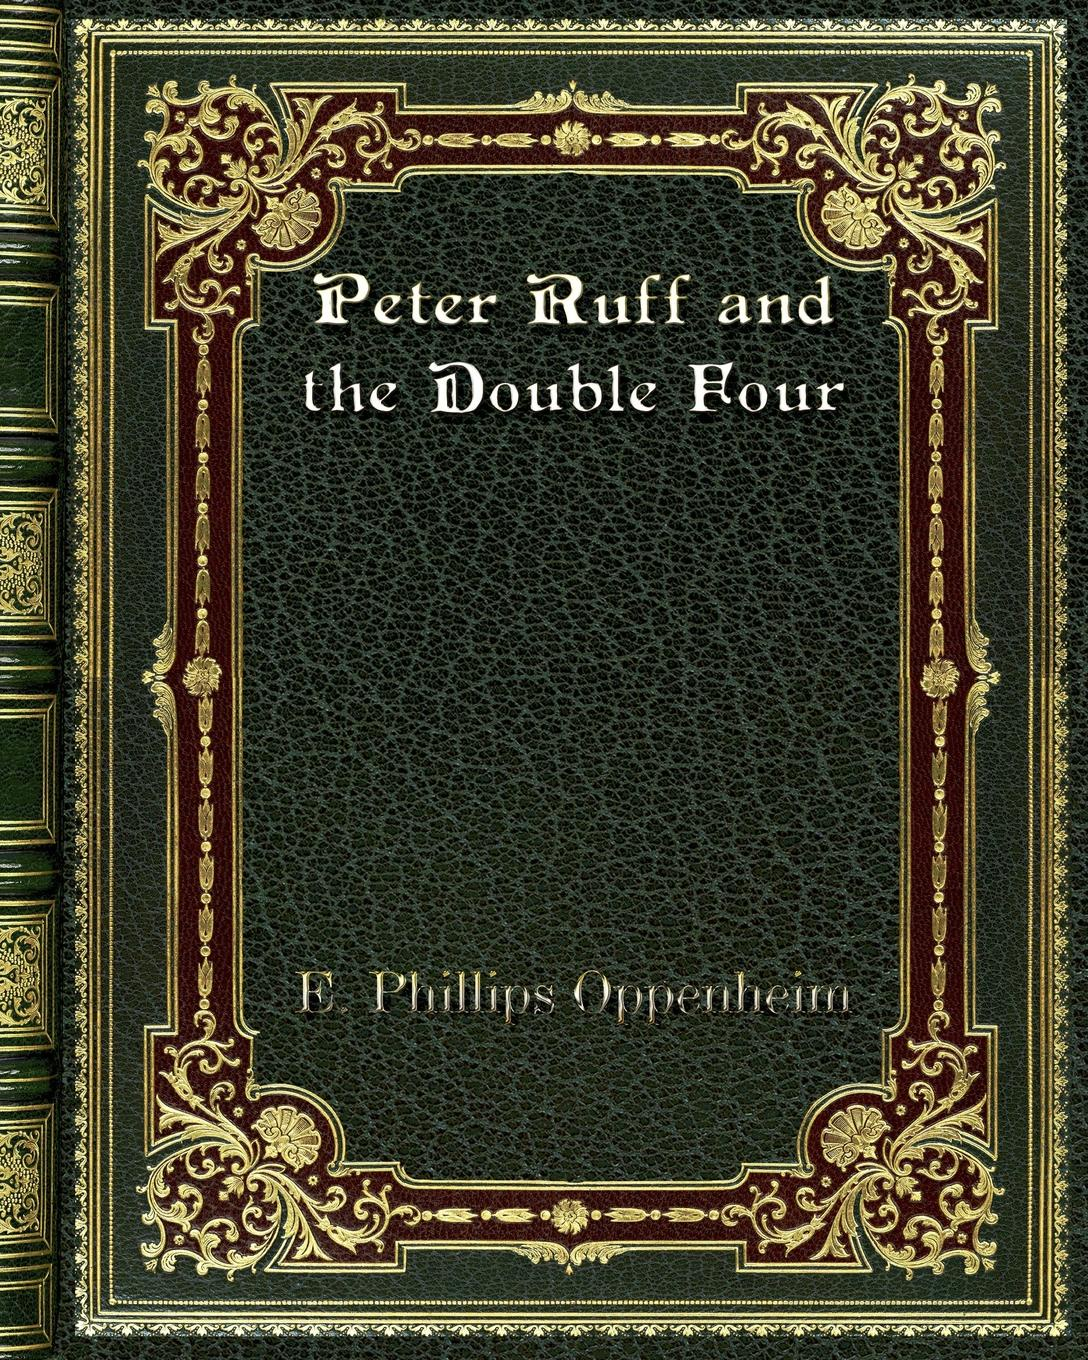 E. Phillips Oppenheim Peter Ruff and the Double Four double e page 10